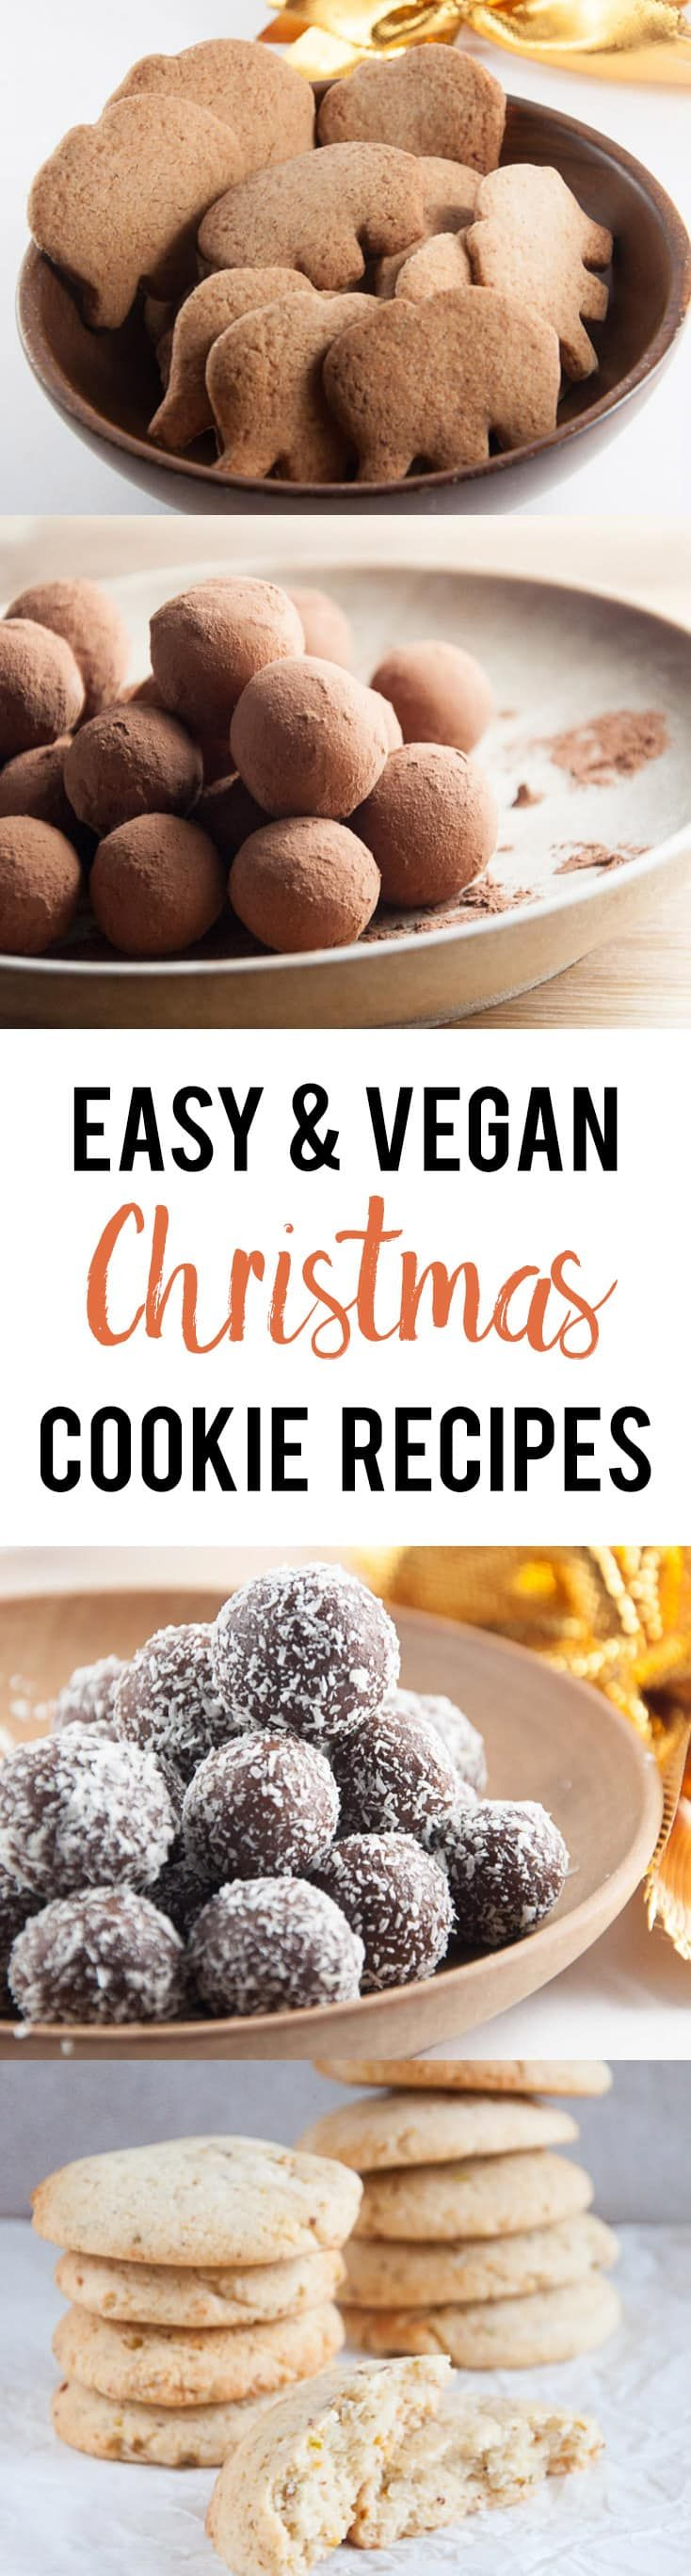 10 Easy  Vegan Christmas Cookie Recipes  including NoBake Rum Balls Gingerbread Cookies Pistachio Rosewater Cookies and many more